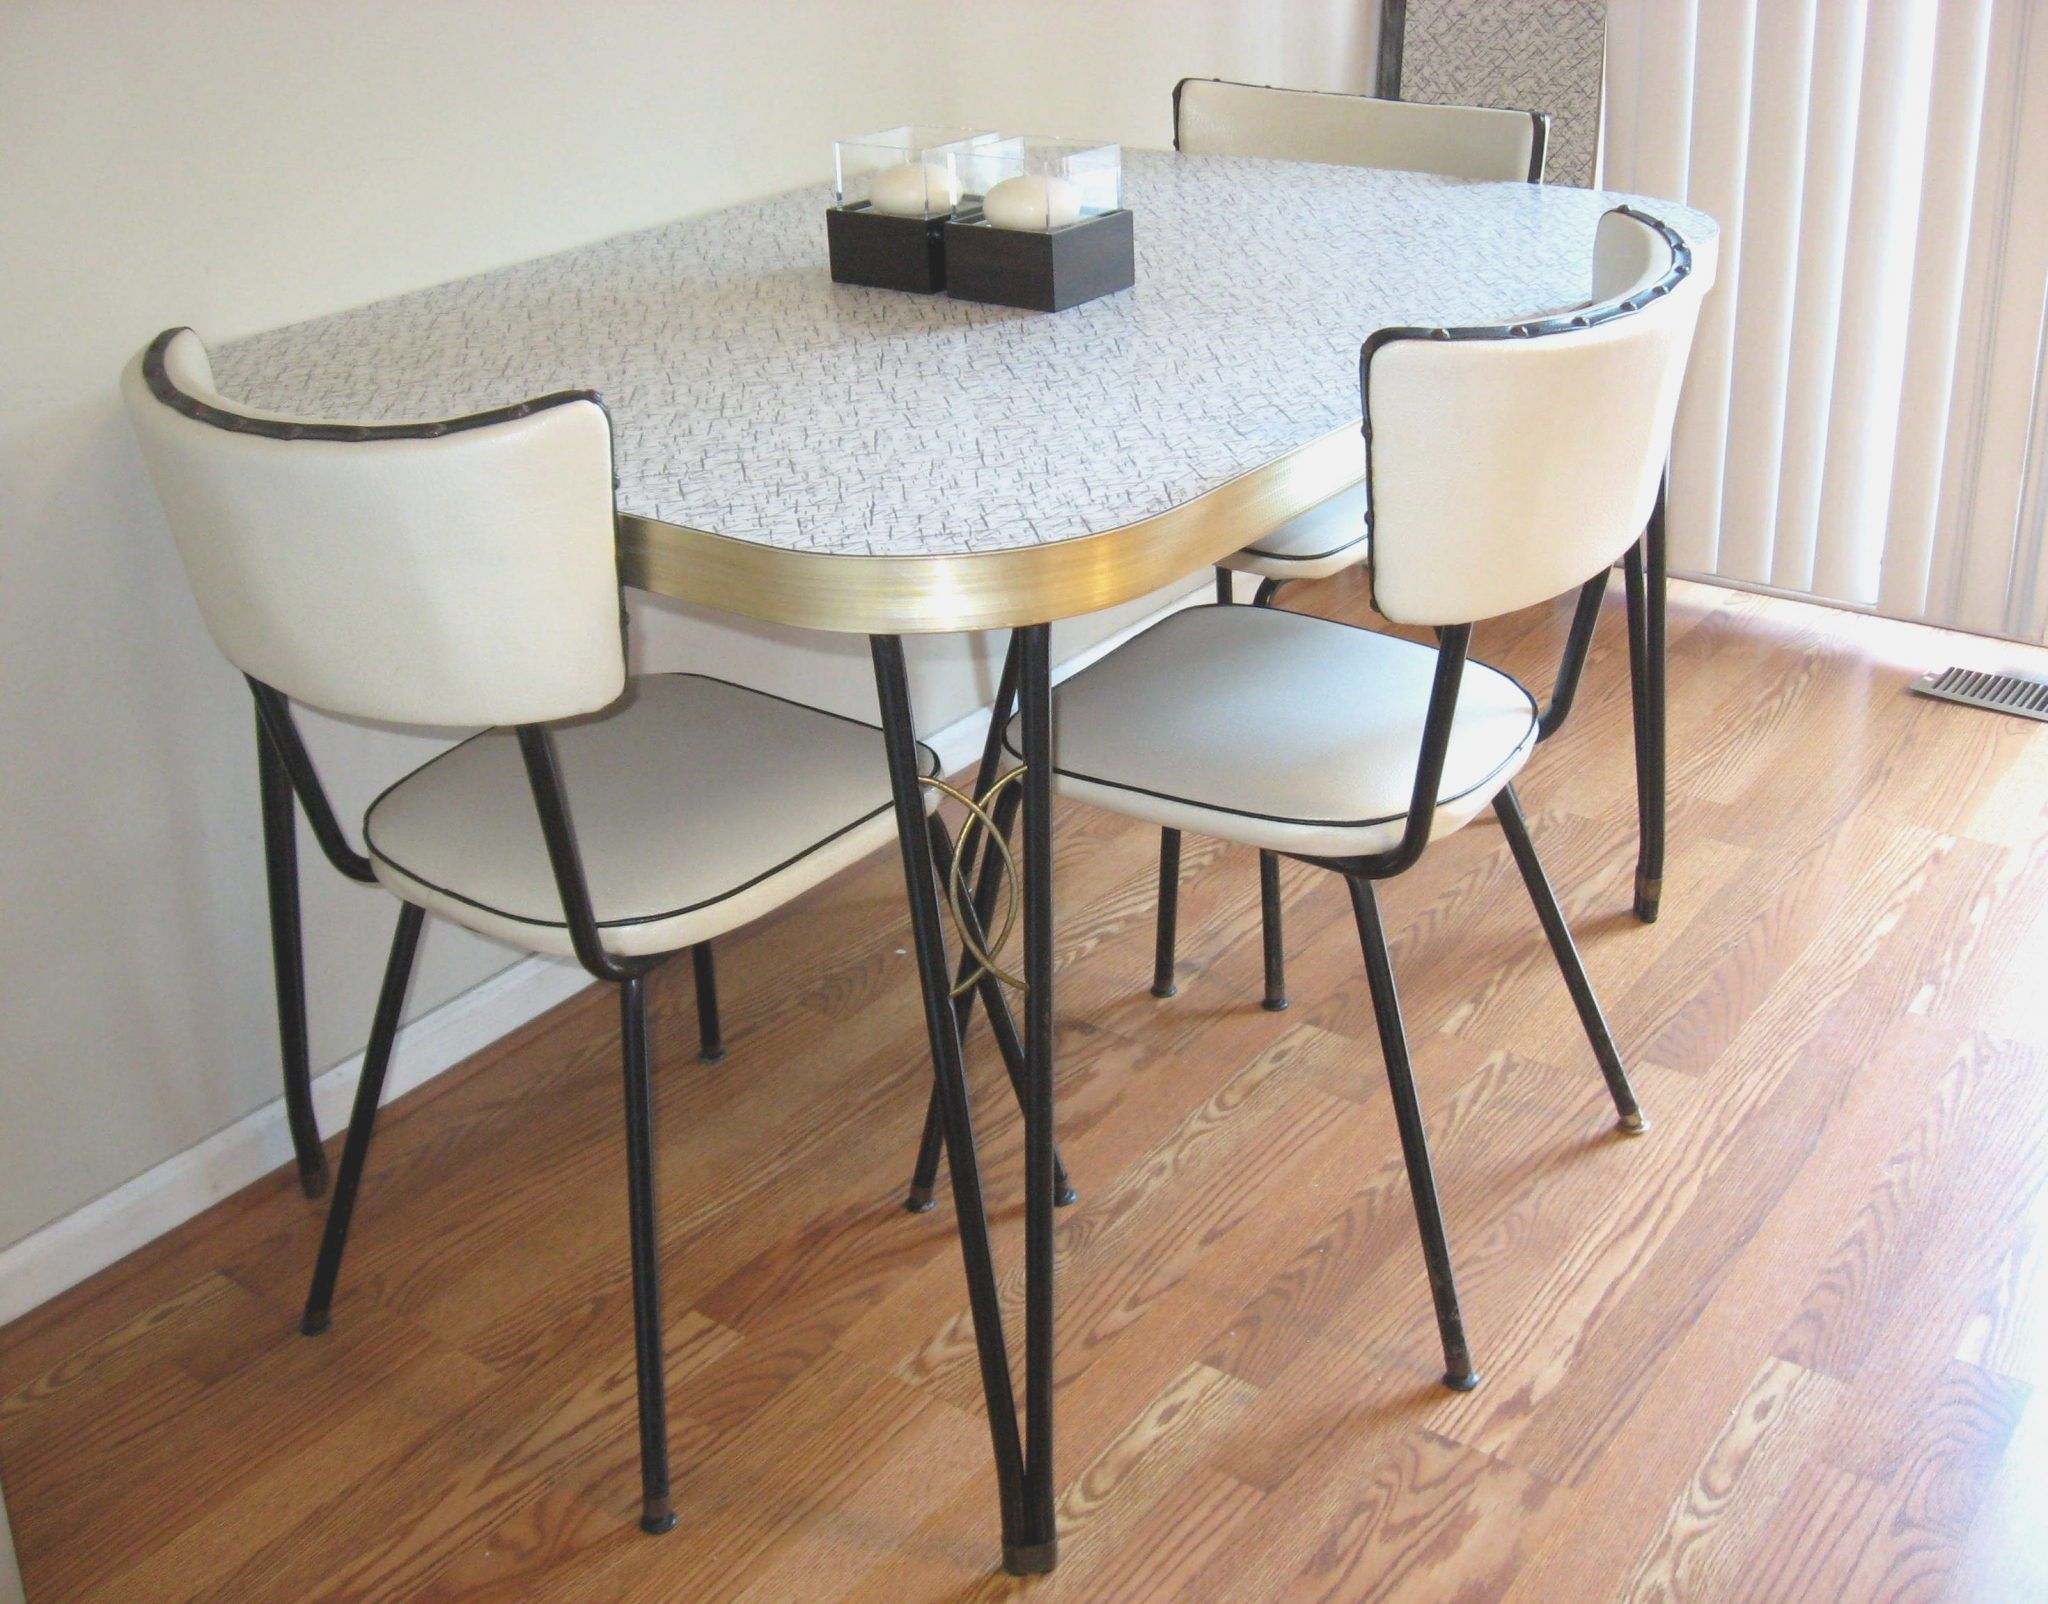 Vintage kitchen table and chairs old pine kitchen table and chairs retro formica table and chairs for sale retro kitchen table and chairs retro kitchen